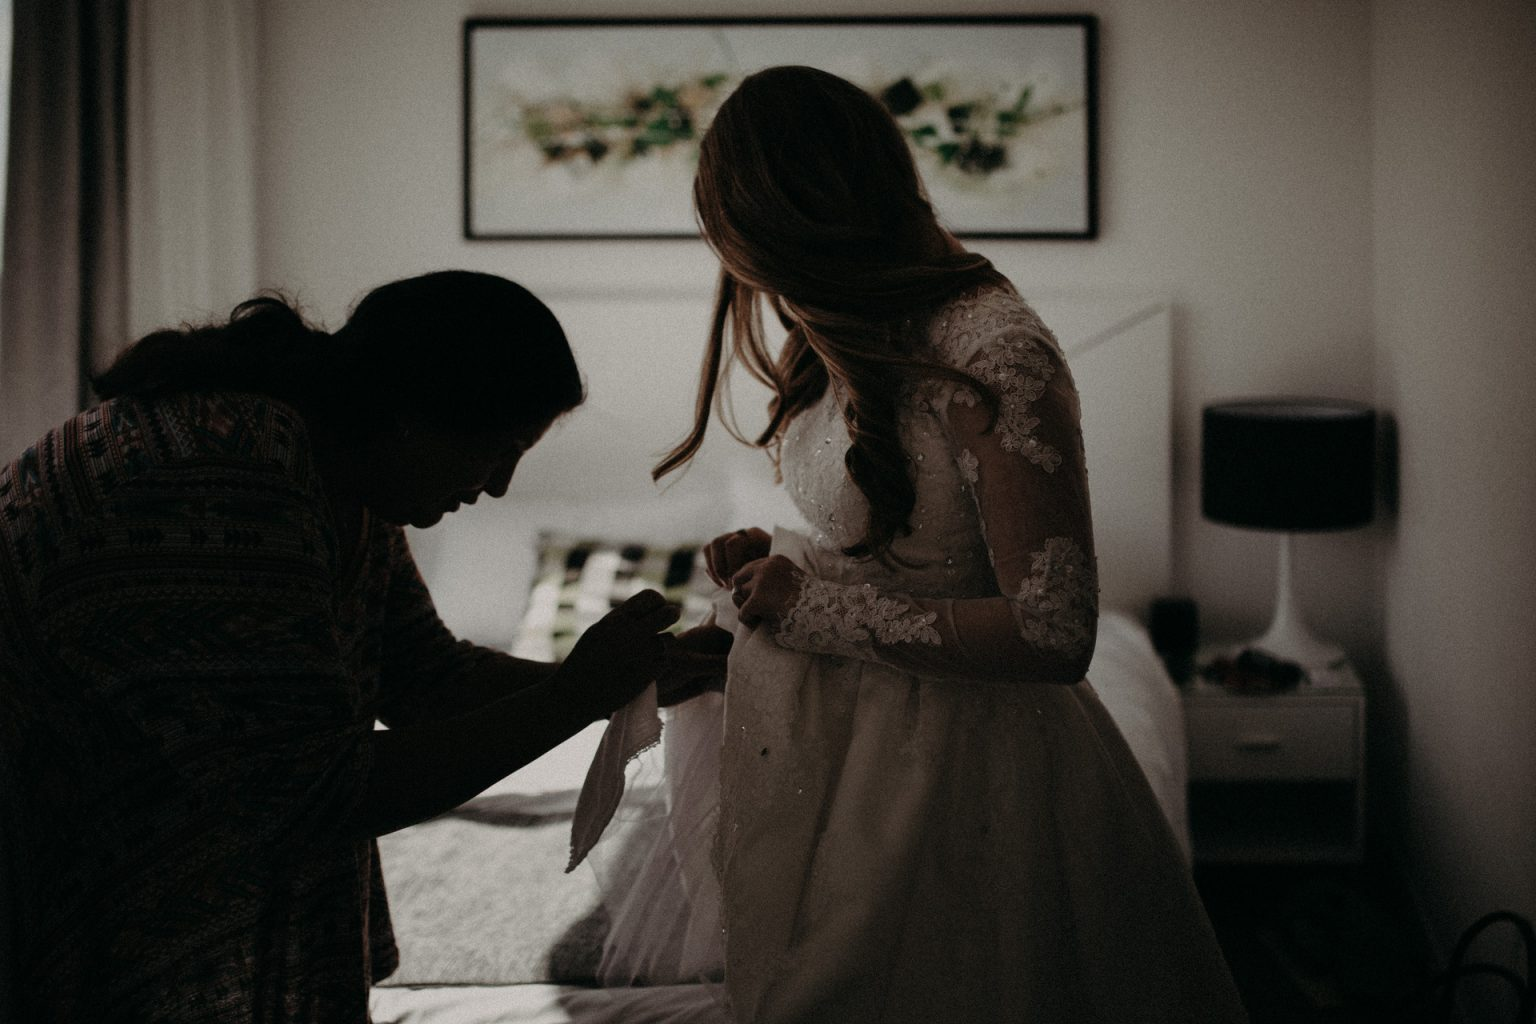 mother helping bride with dress